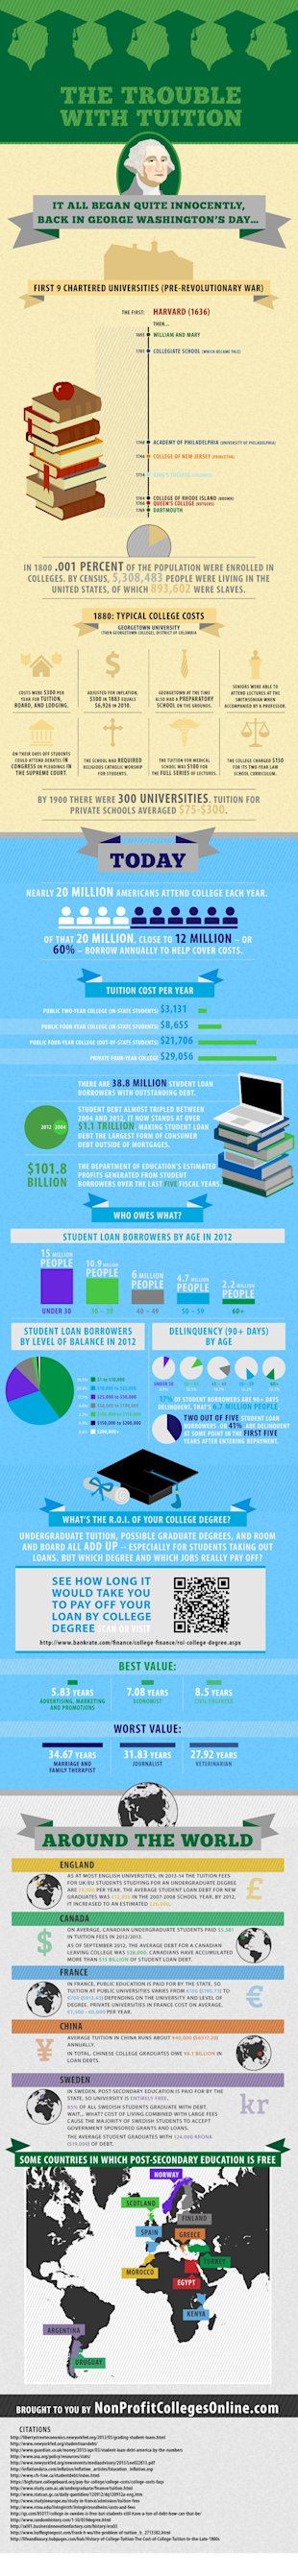 The US College Tuition Business image trouble4